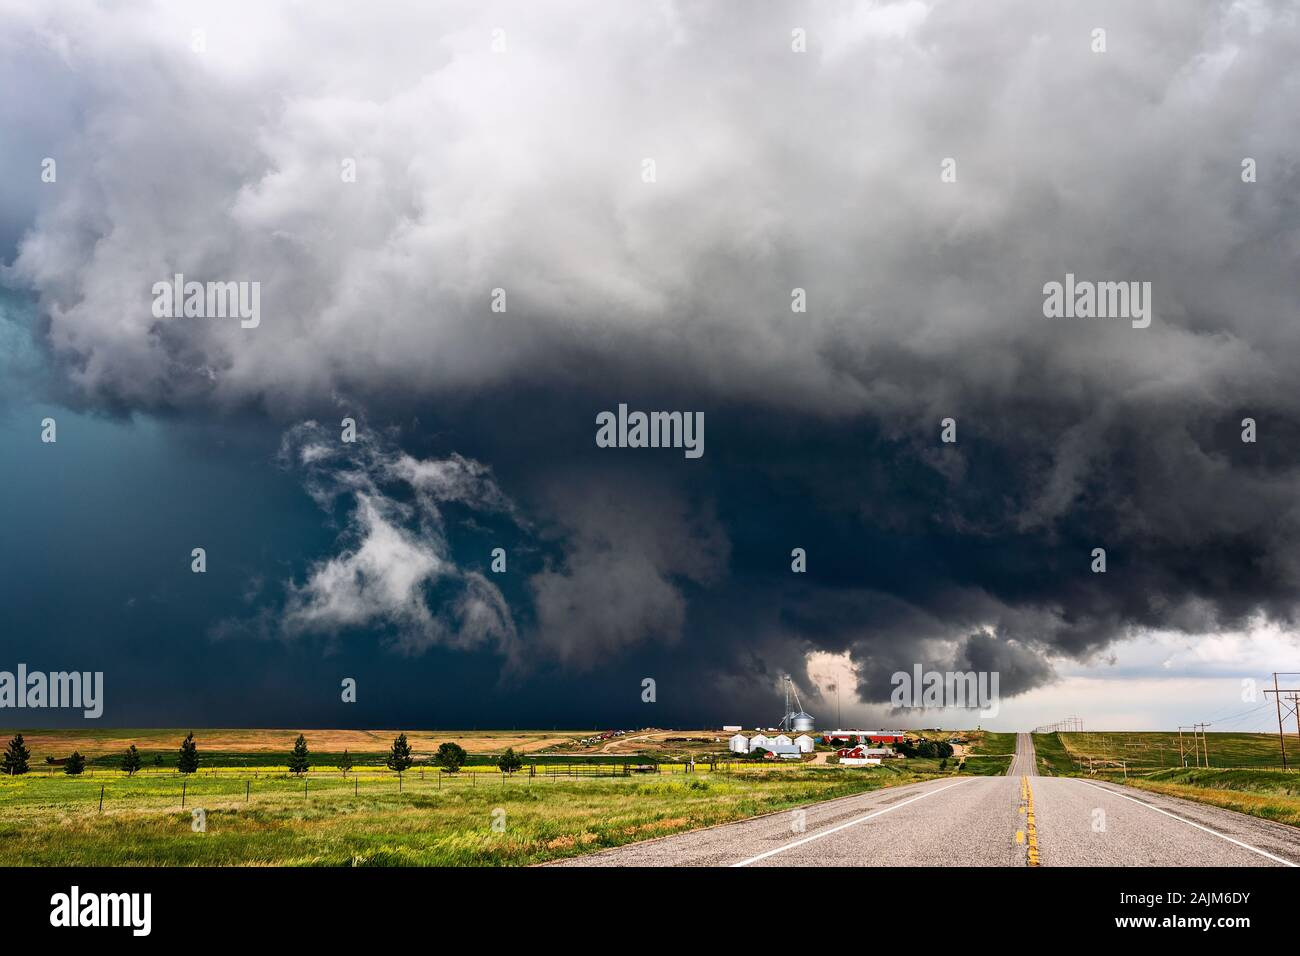 A stormy sky with dramatic, dark clouds sweeps across a farm as a severe thunderstorm approaches Anton, Colorado. Stock Photo